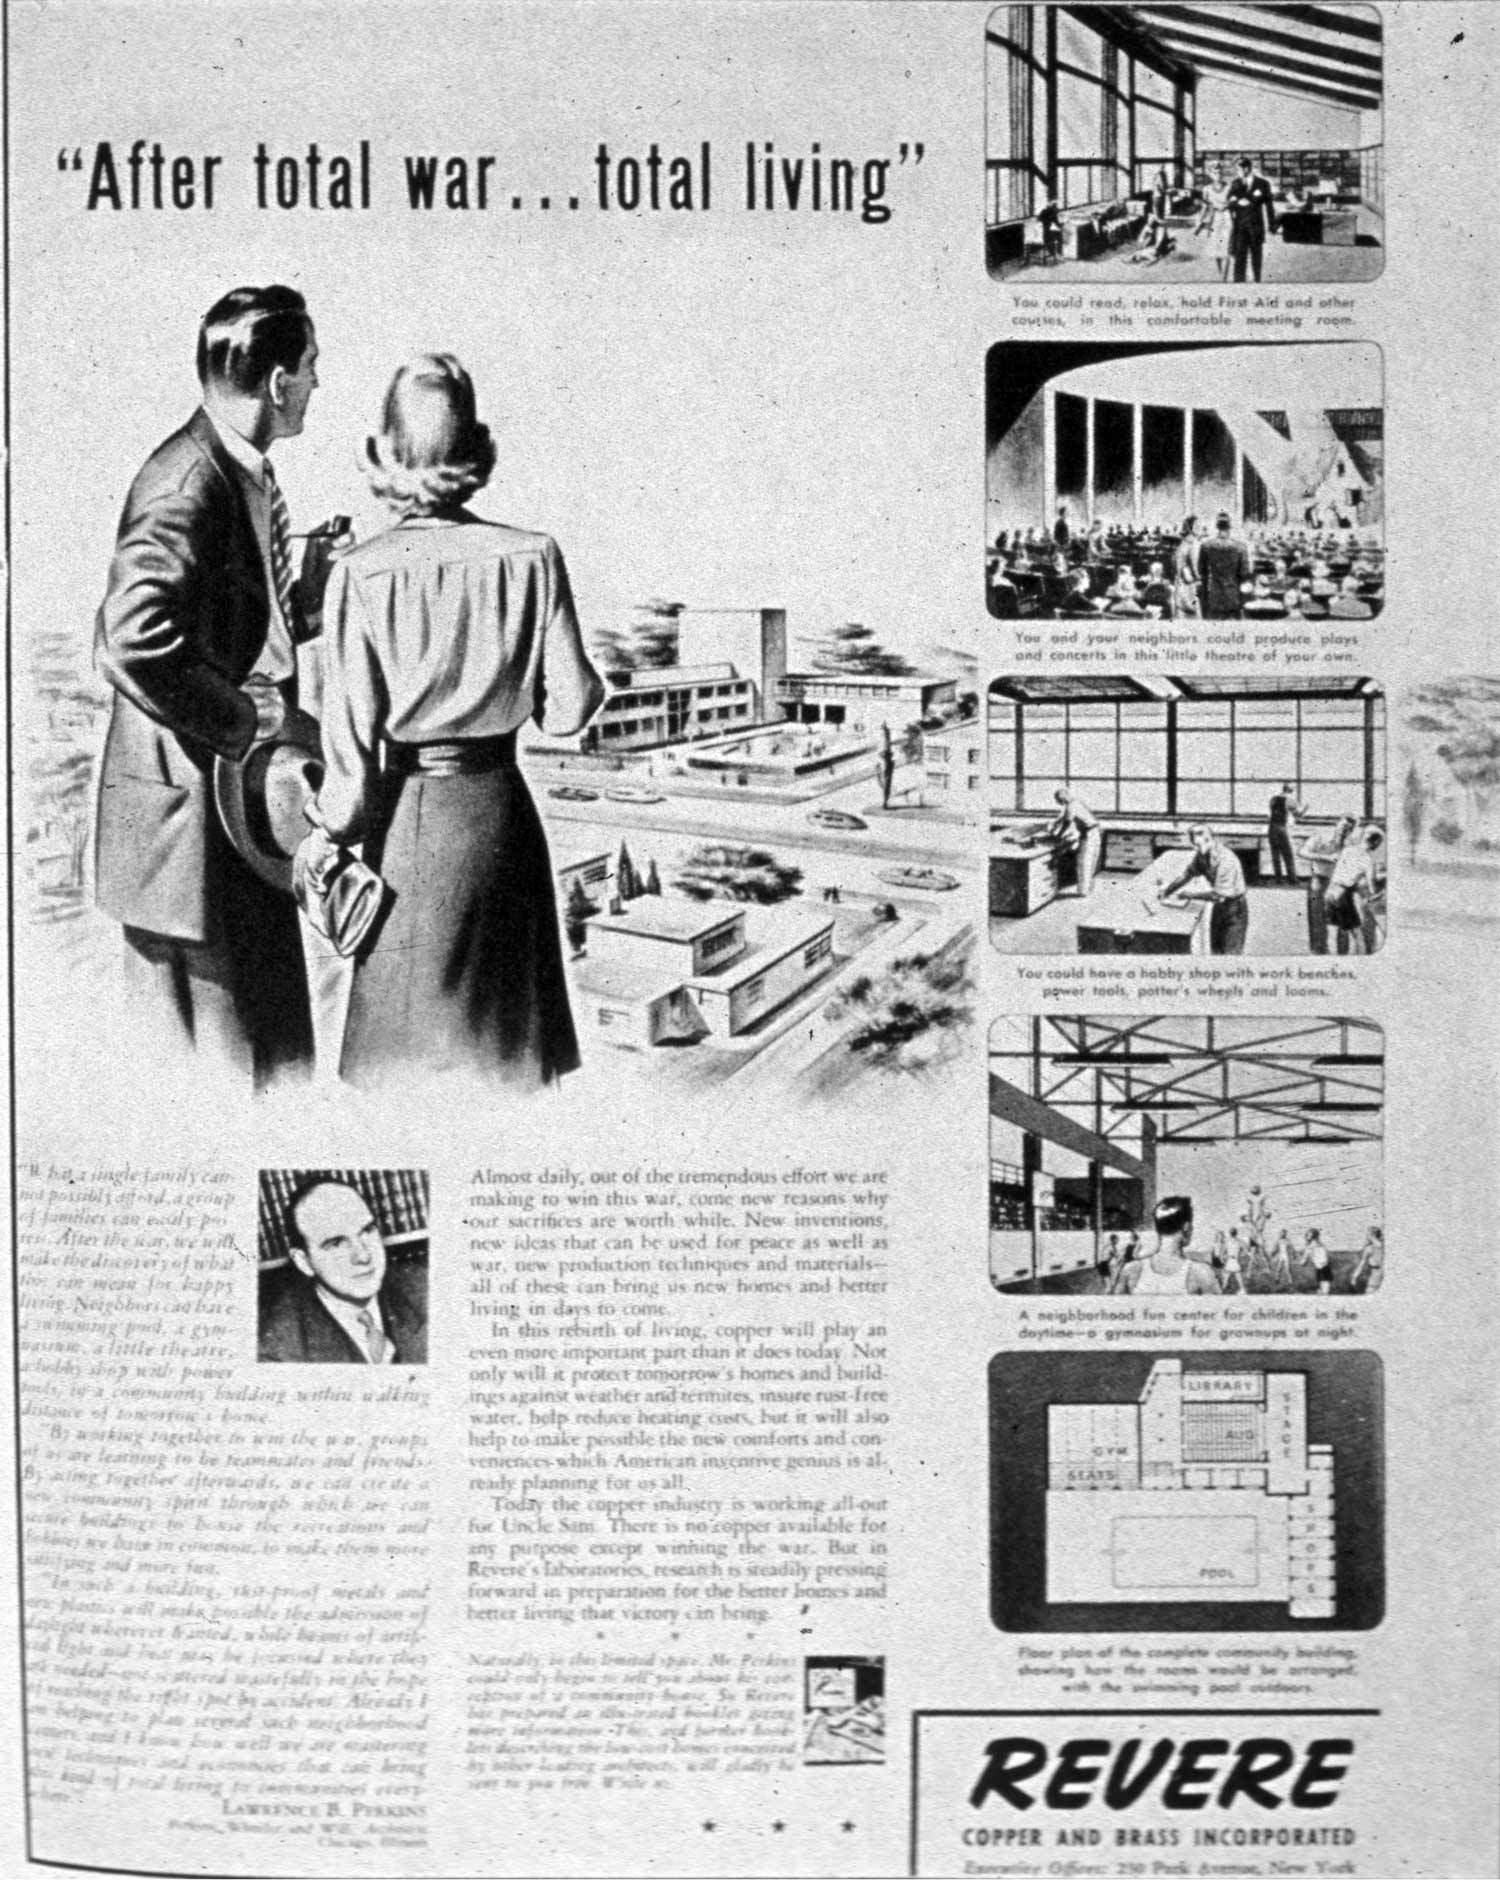 Advertisement for Revere Copper and Brass, Architectural Forum (October 1942).